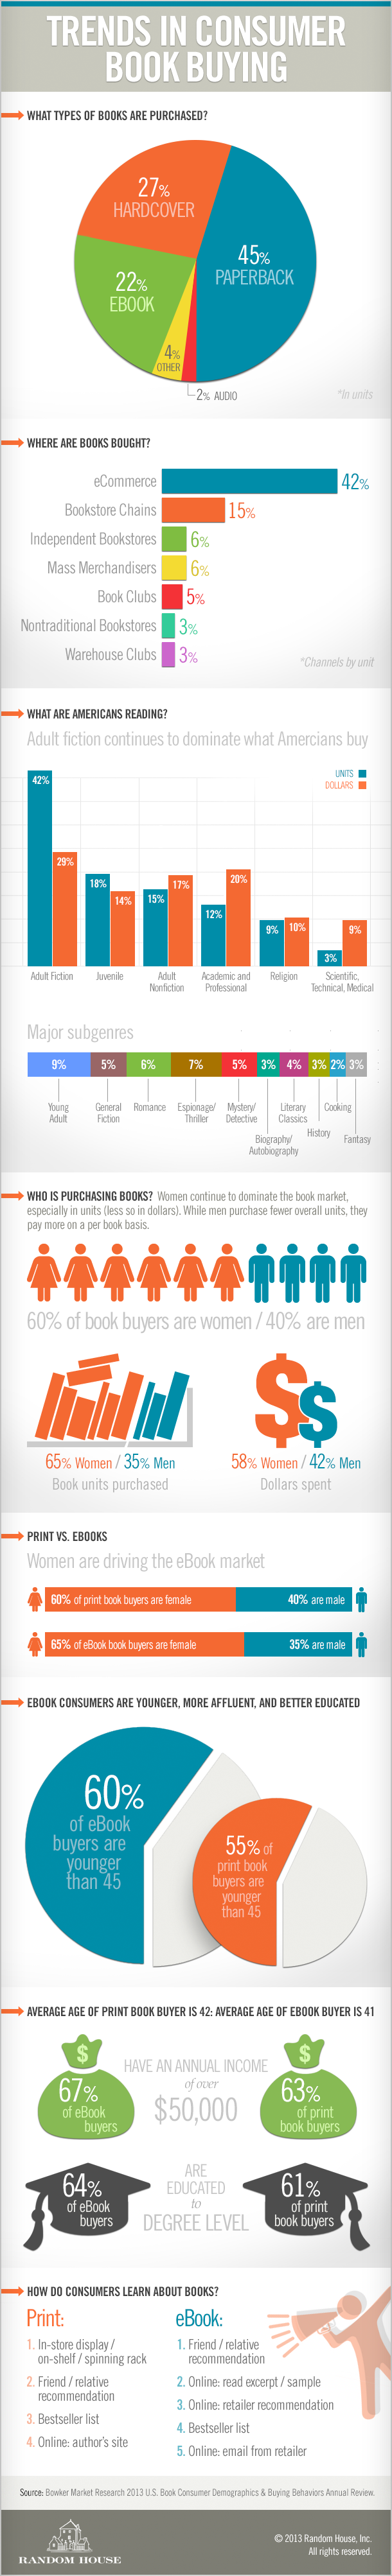 infographic about the sales of books and consumers